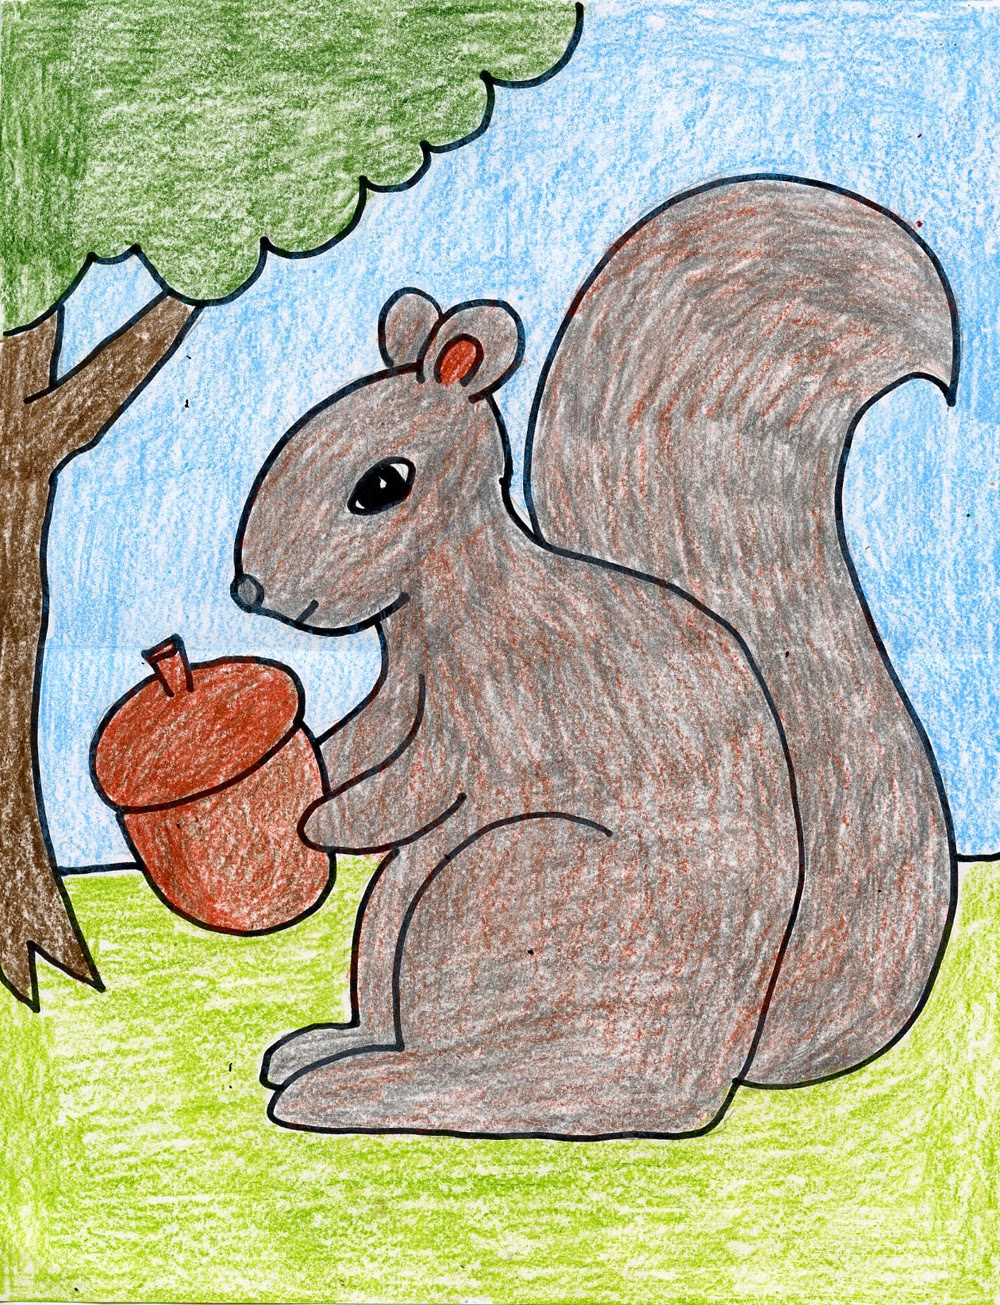 draw a squirrel art projects for kids